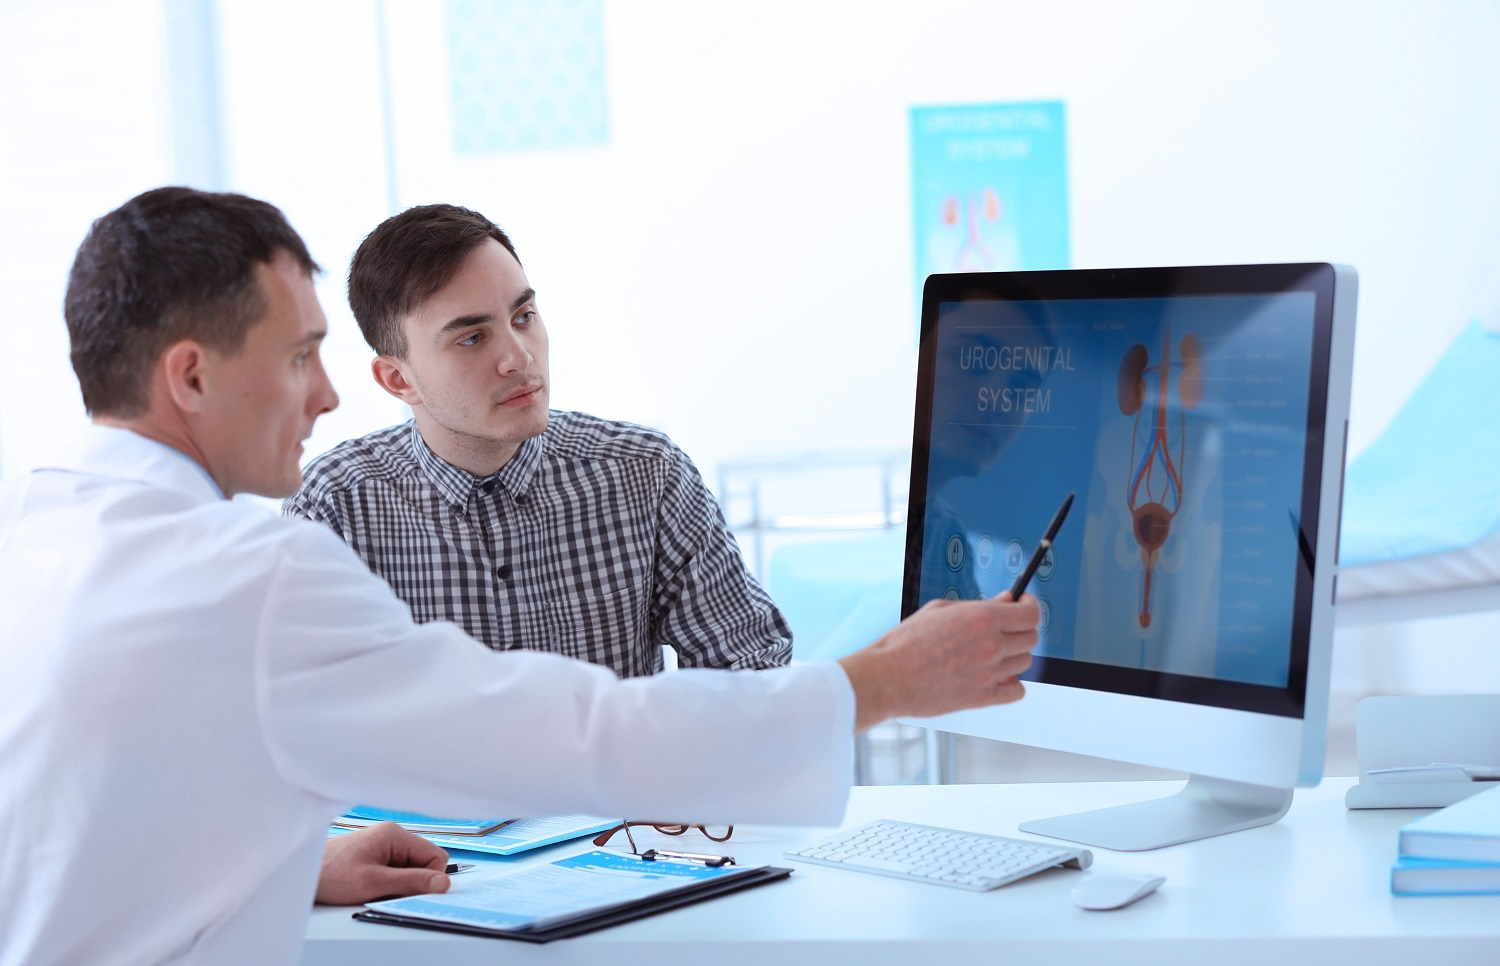 Medical concept. Doctor showing results of urology diagnostic on computer monitor